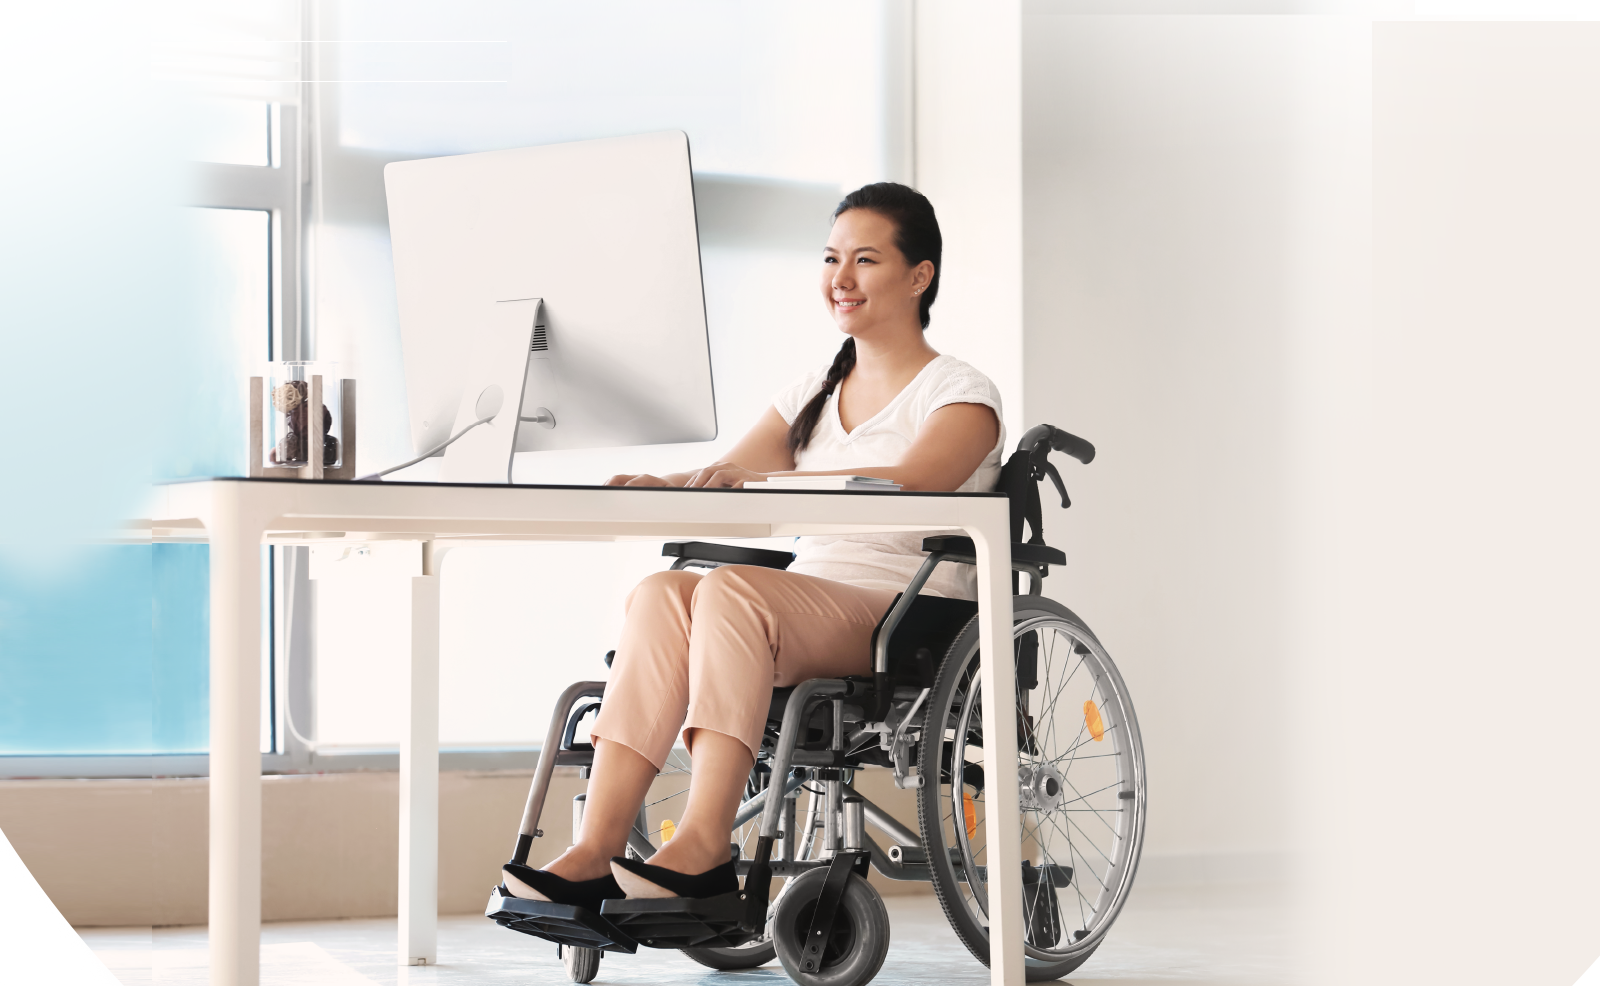 Illustrative image of a person on wheelchair looking at a computer screen